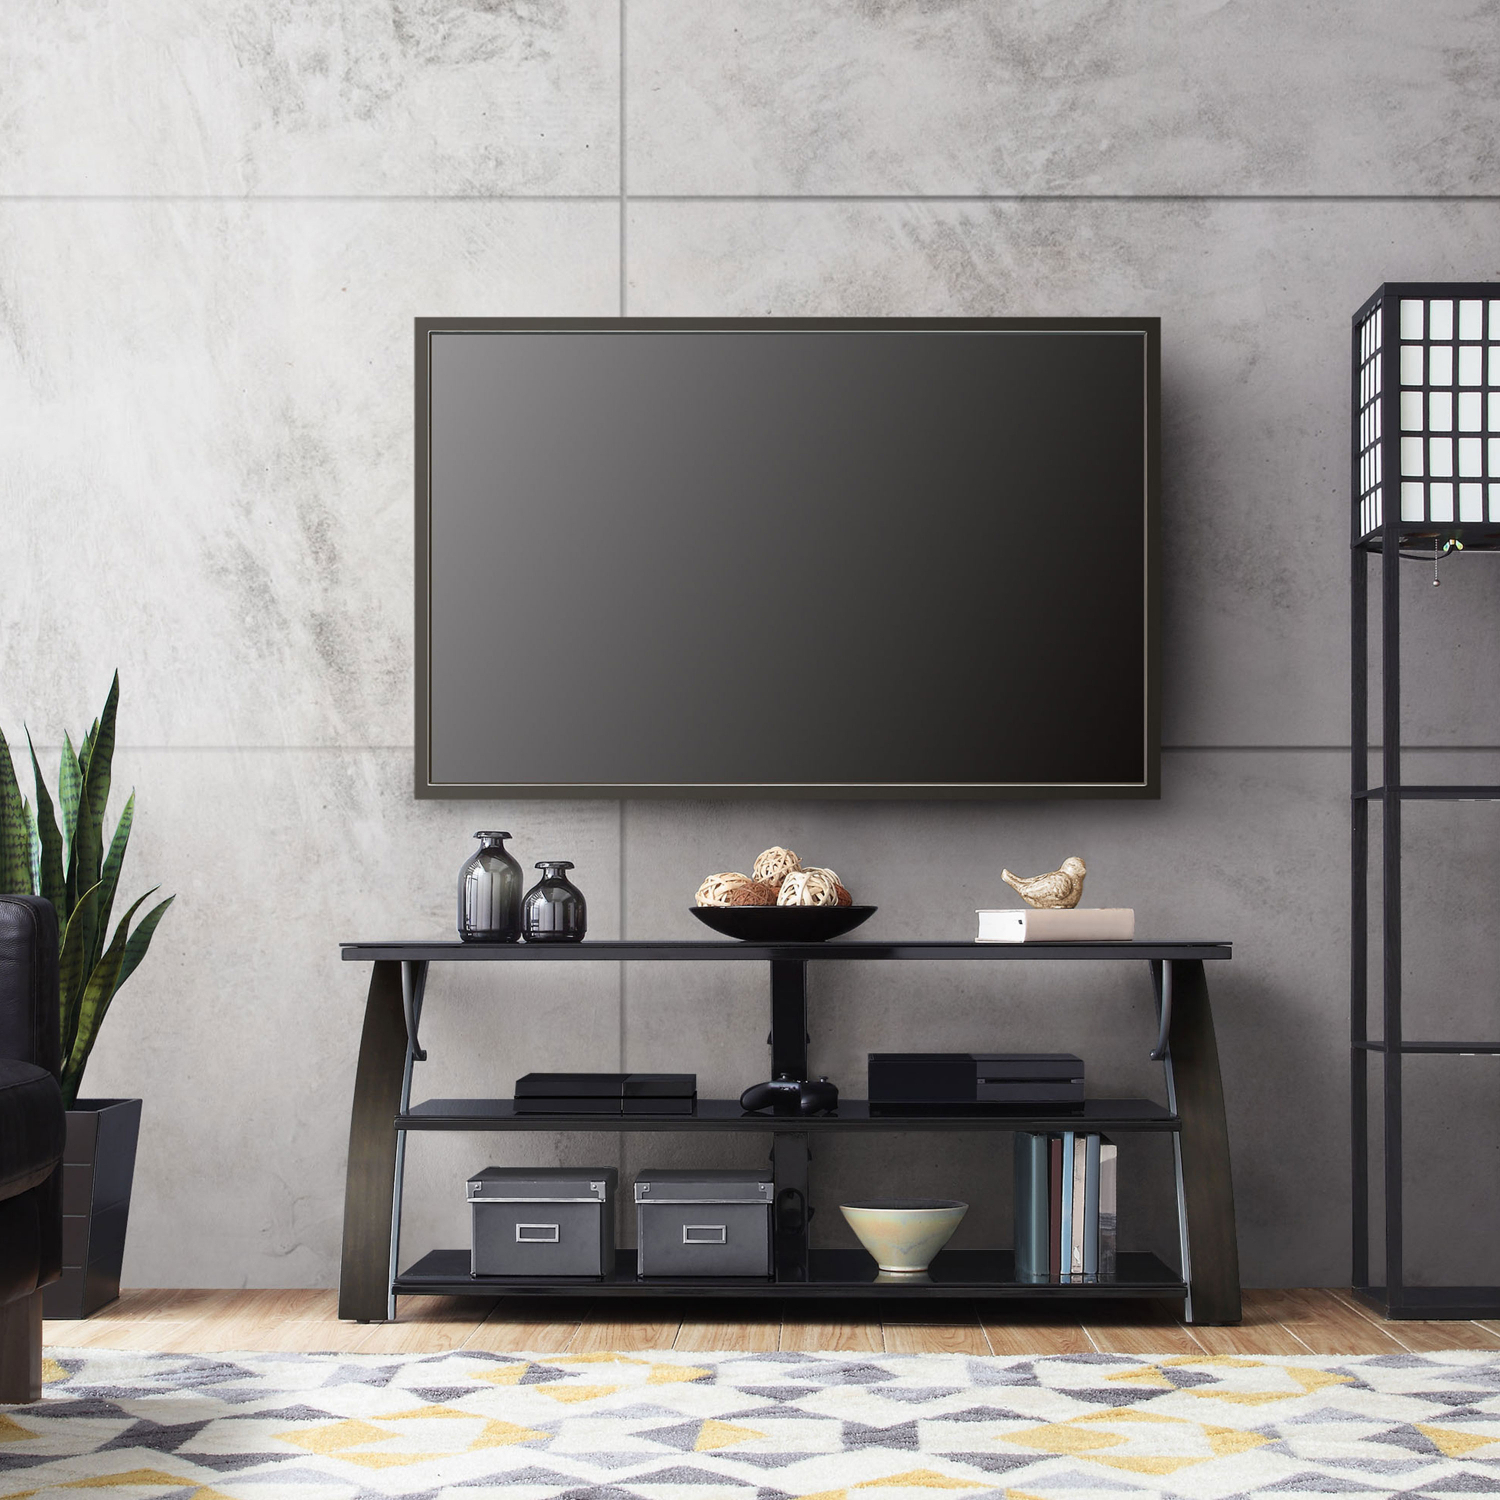 """Widely Used Whalen Payton 3 In 1 Flat Panel Tv Stands With Multiple Finishes Throughout Tv Stand Flat Panel For Tvs Up To 65"""" Screen Entertainment (View 9 of 10)"""